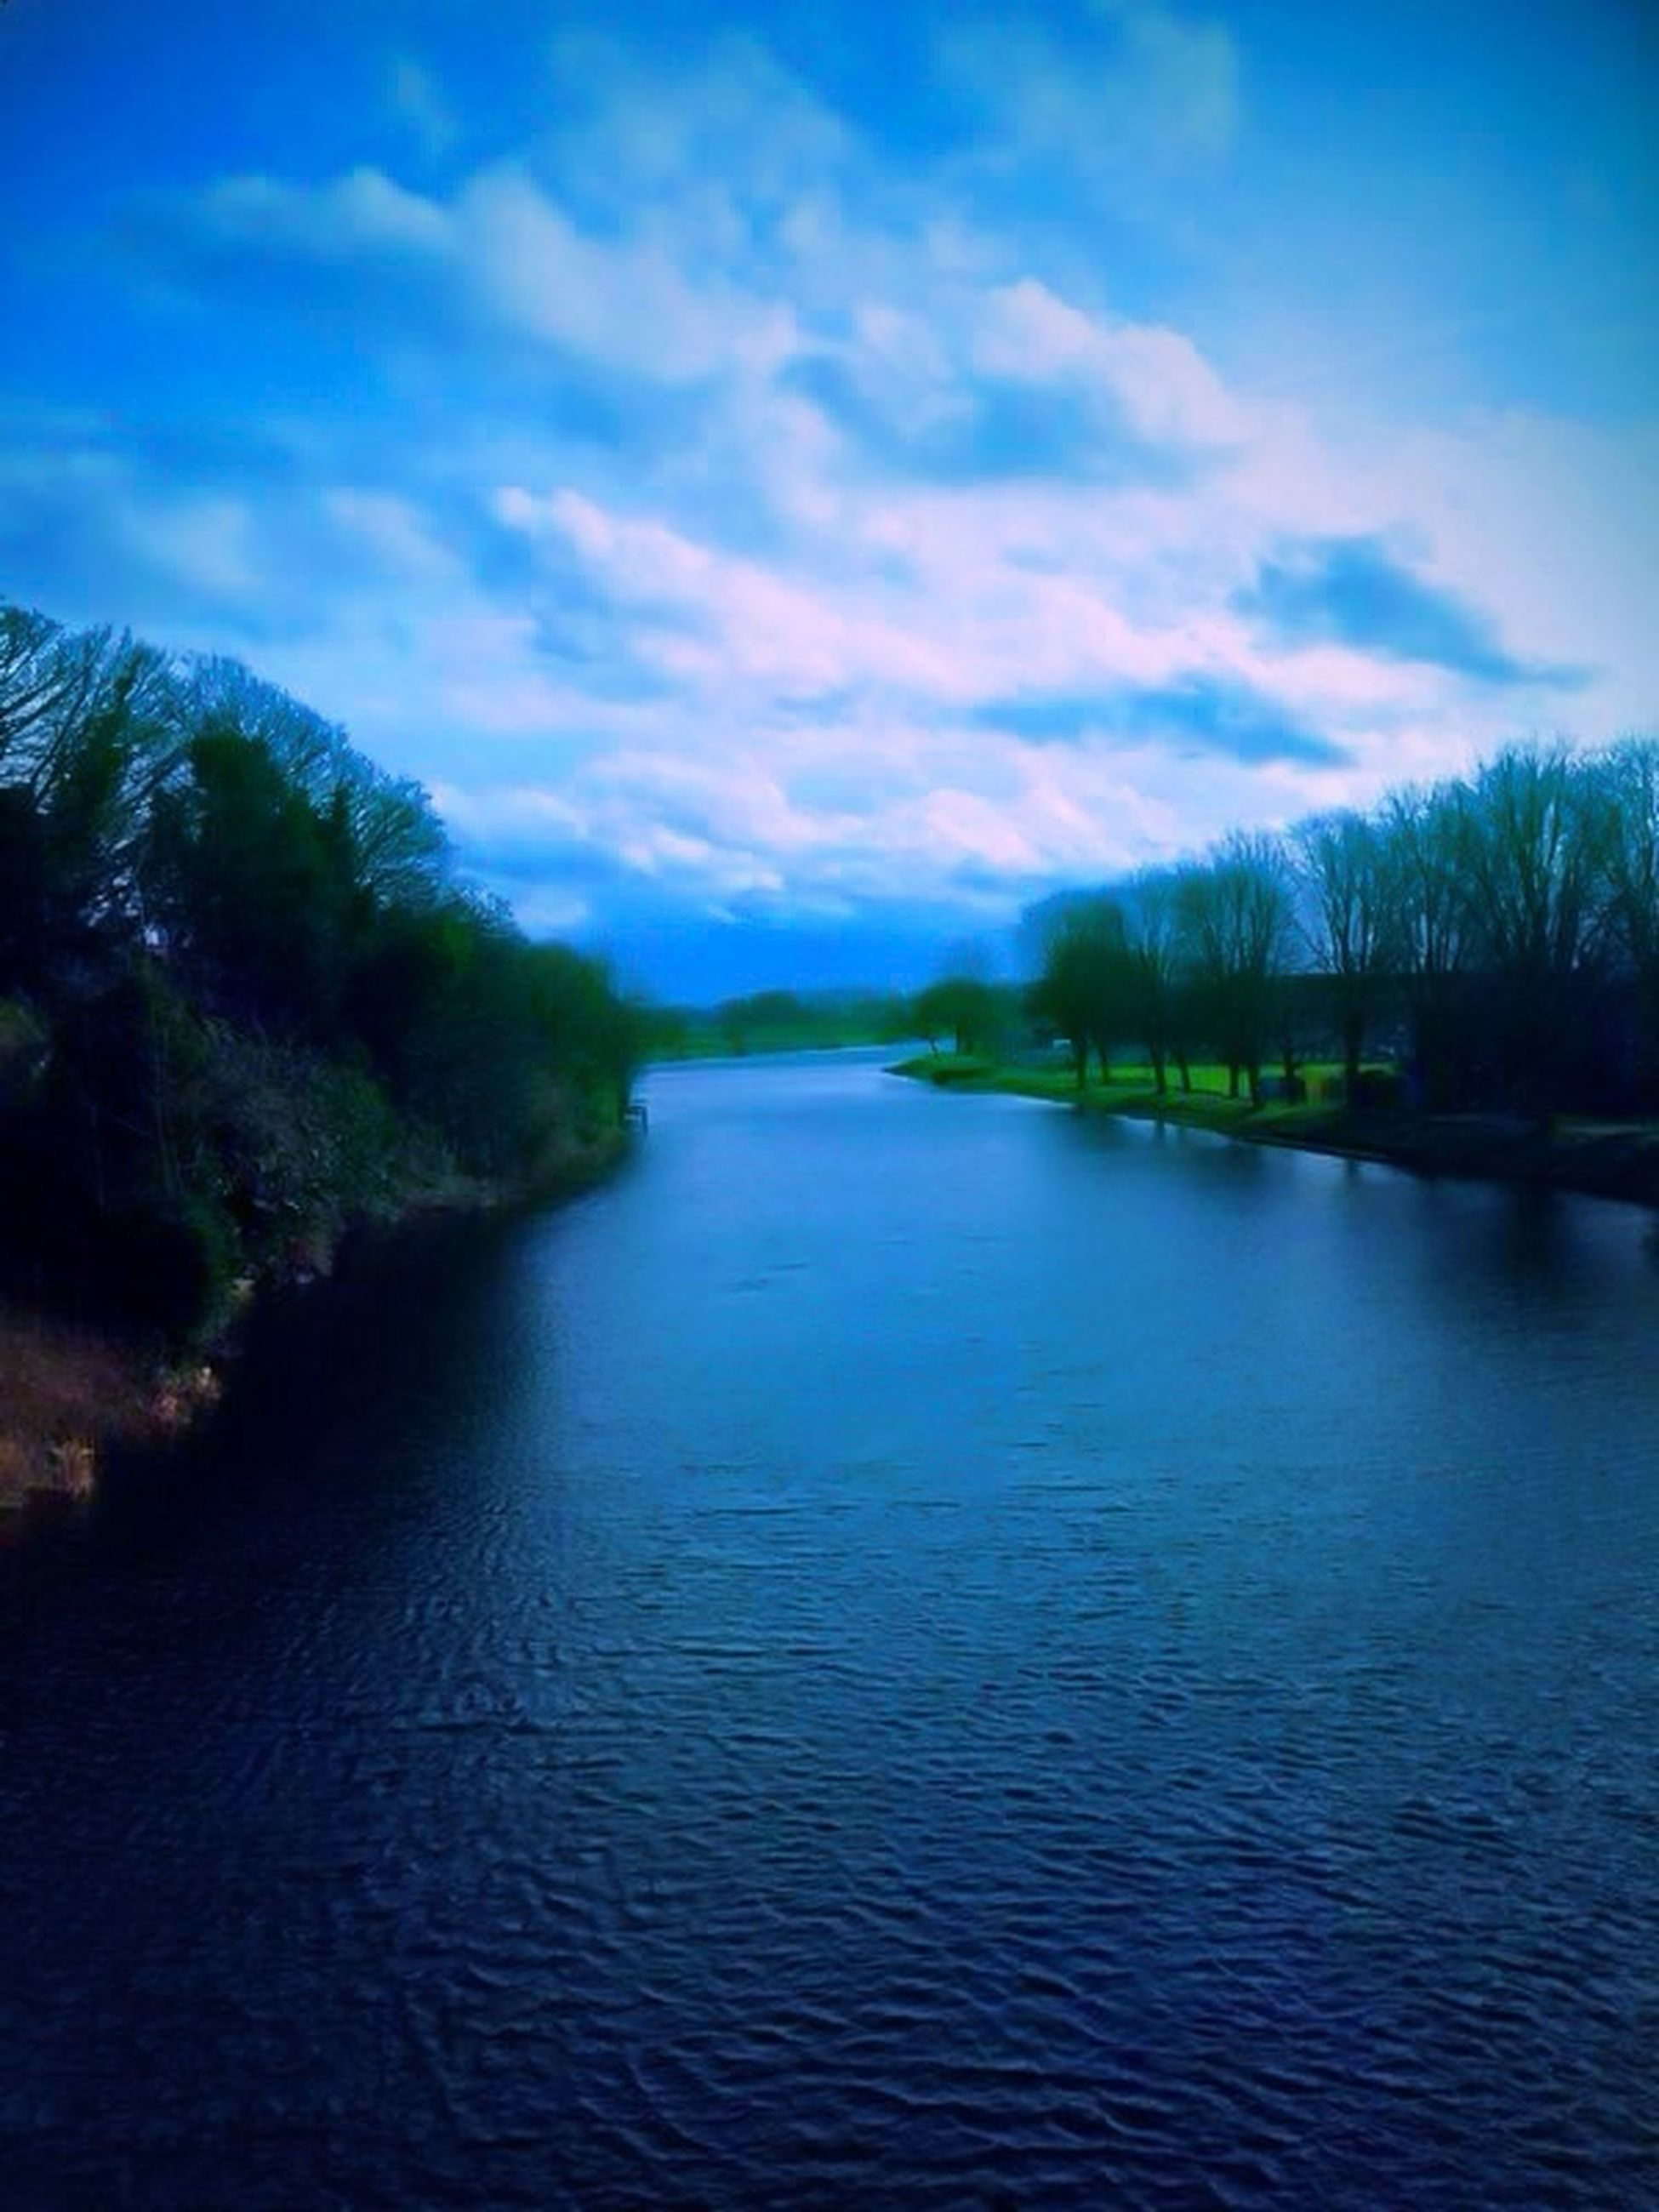 water, the way forward, sky, diminishing perspective, transportation, blue, vanishing point, tranquility, reflection, tranquil scene, nature, waterfront, beauty in nature, scenics, cloud - sky, lake, road, narrow, river, outdoors